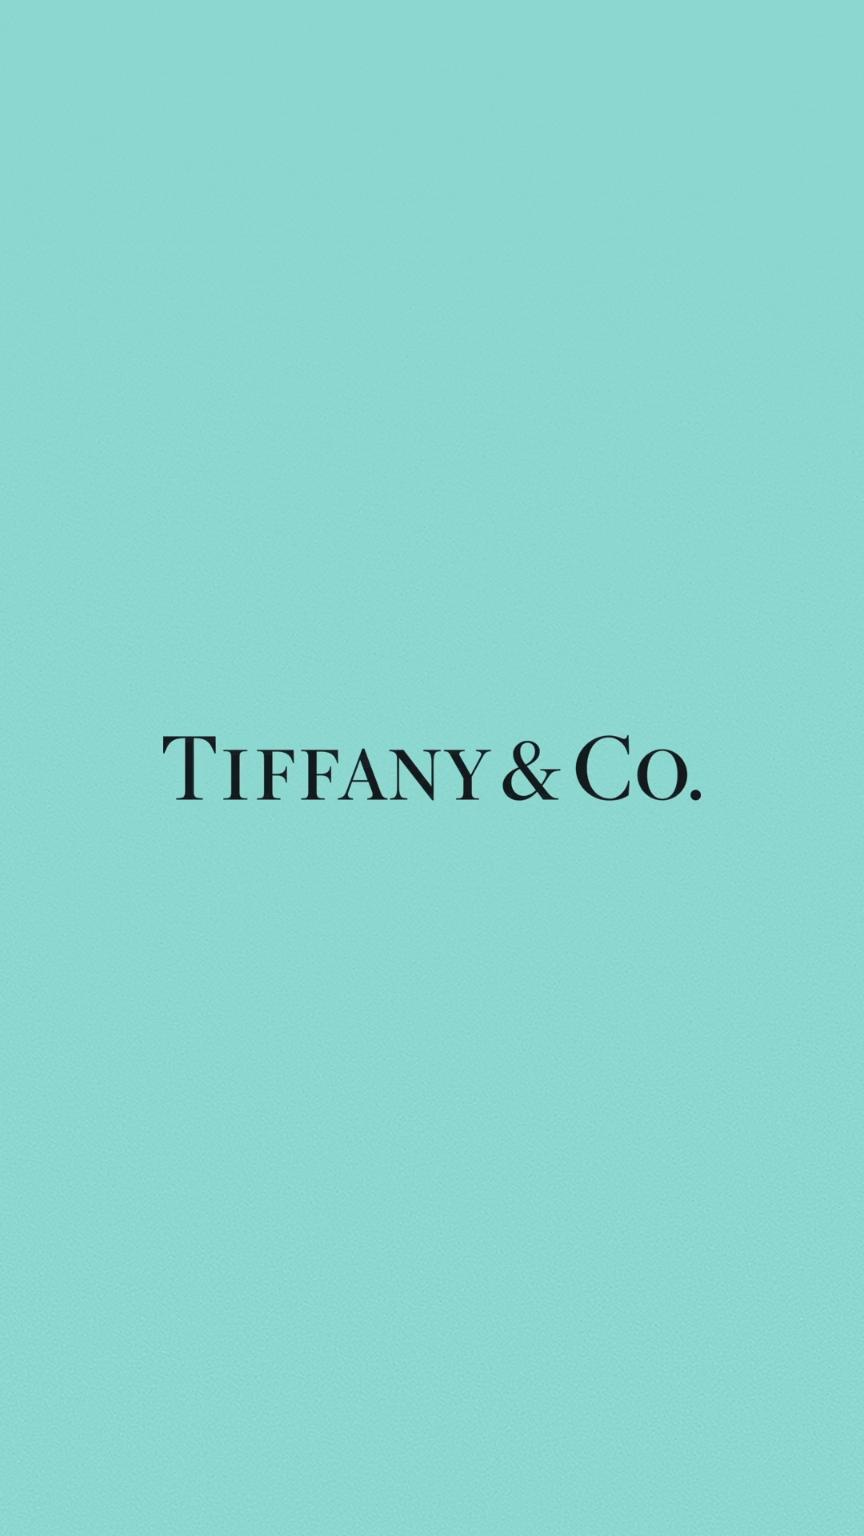 A brilliant love story starts with #Tiffany. #TiffanyAndCo #TiffanyEngagement #BelieveInLove